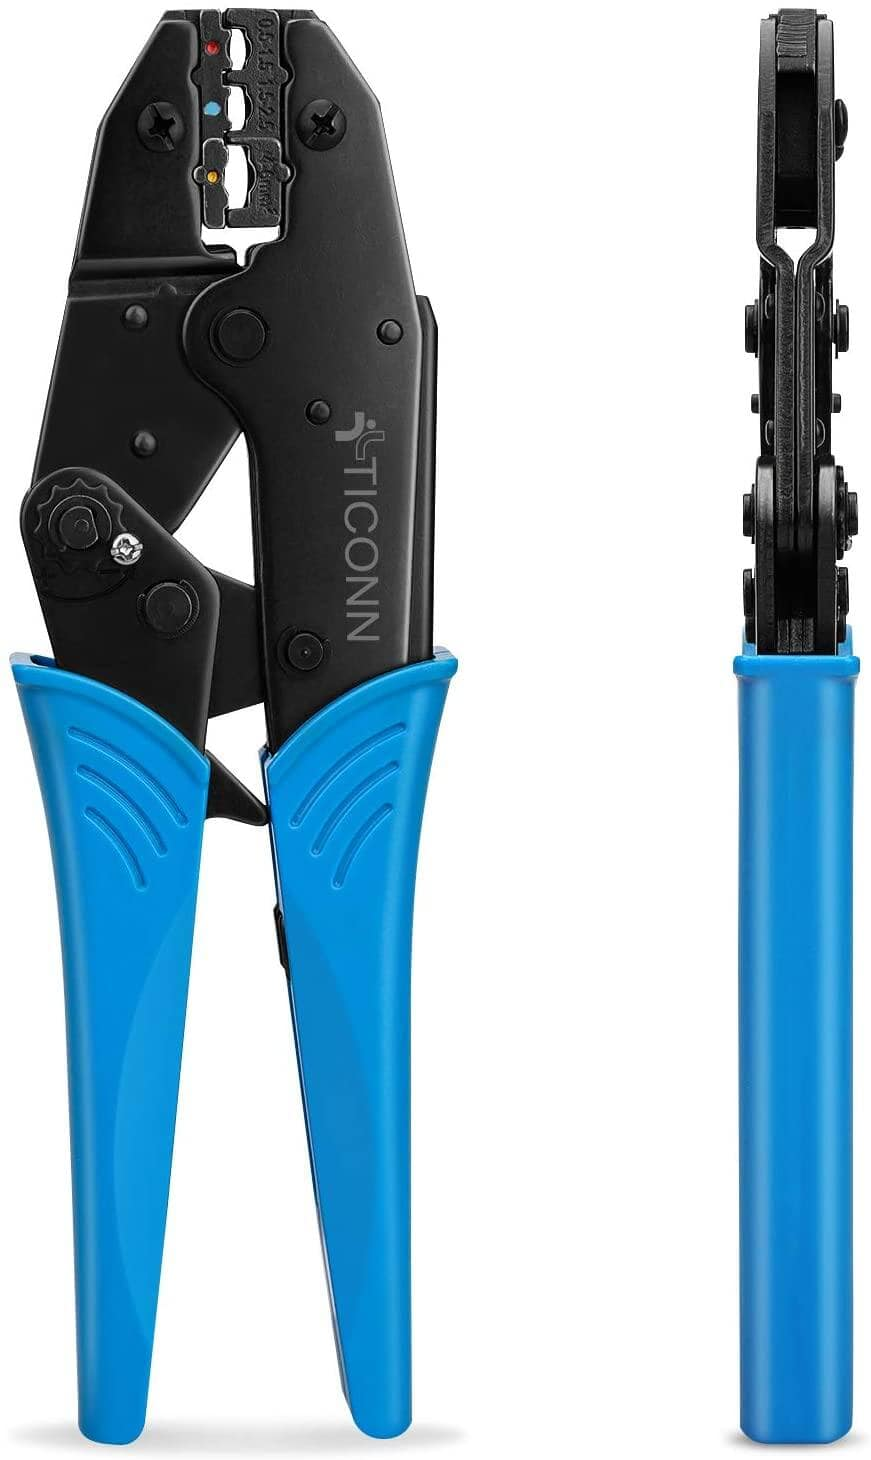 TICONN Crimping Tool for Heat Shrink Connectors (2 colors) $12.97 + Free Shipping w/ Prime or Orders $25+